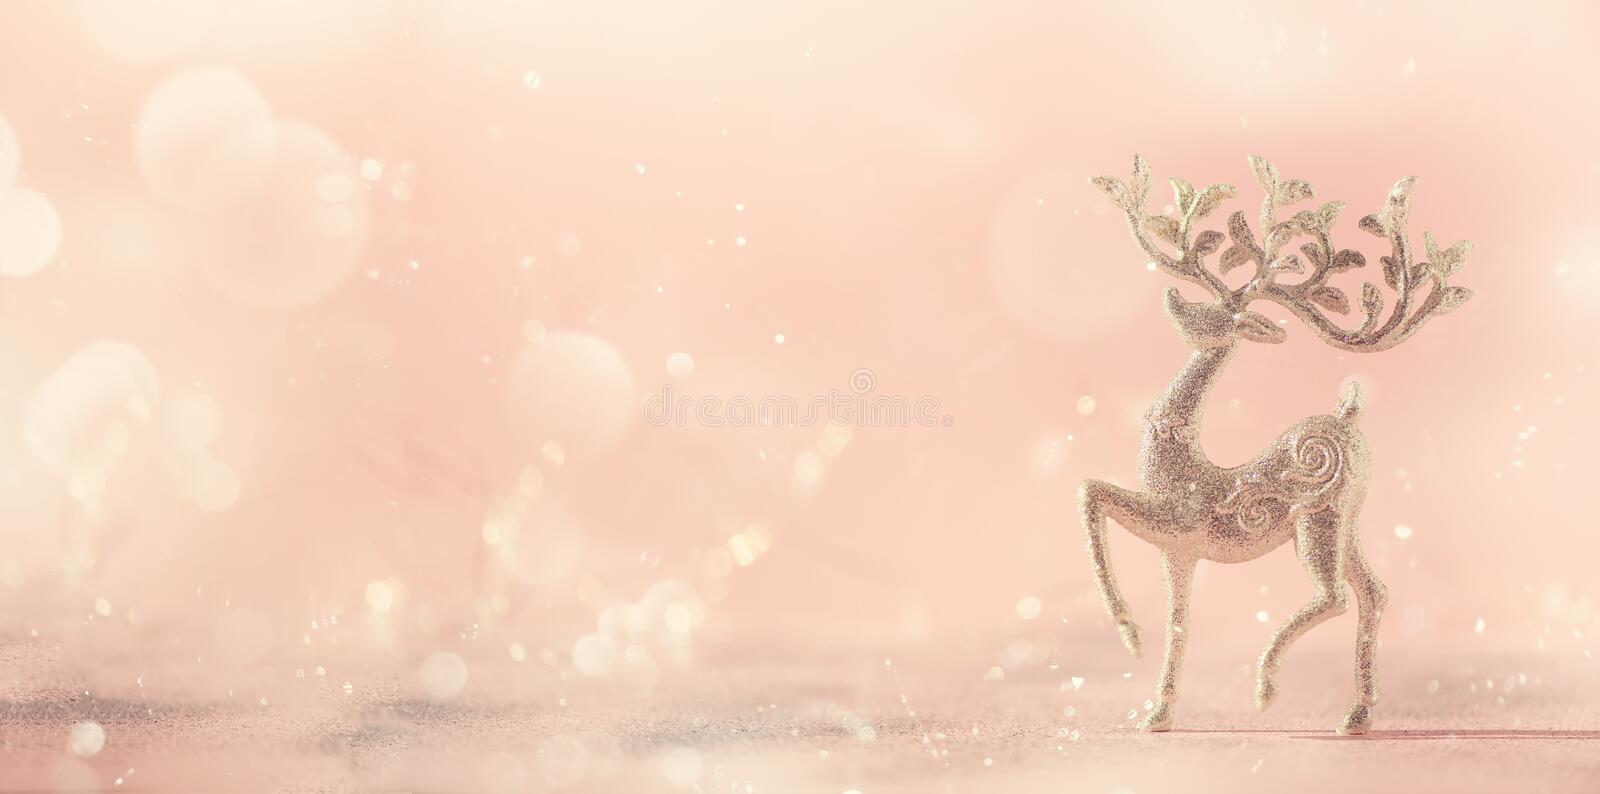 Silver glitter Christmas deer on pink background with lights bokeh, copy space. Greeting card for new year party. Festive holiday stock photography